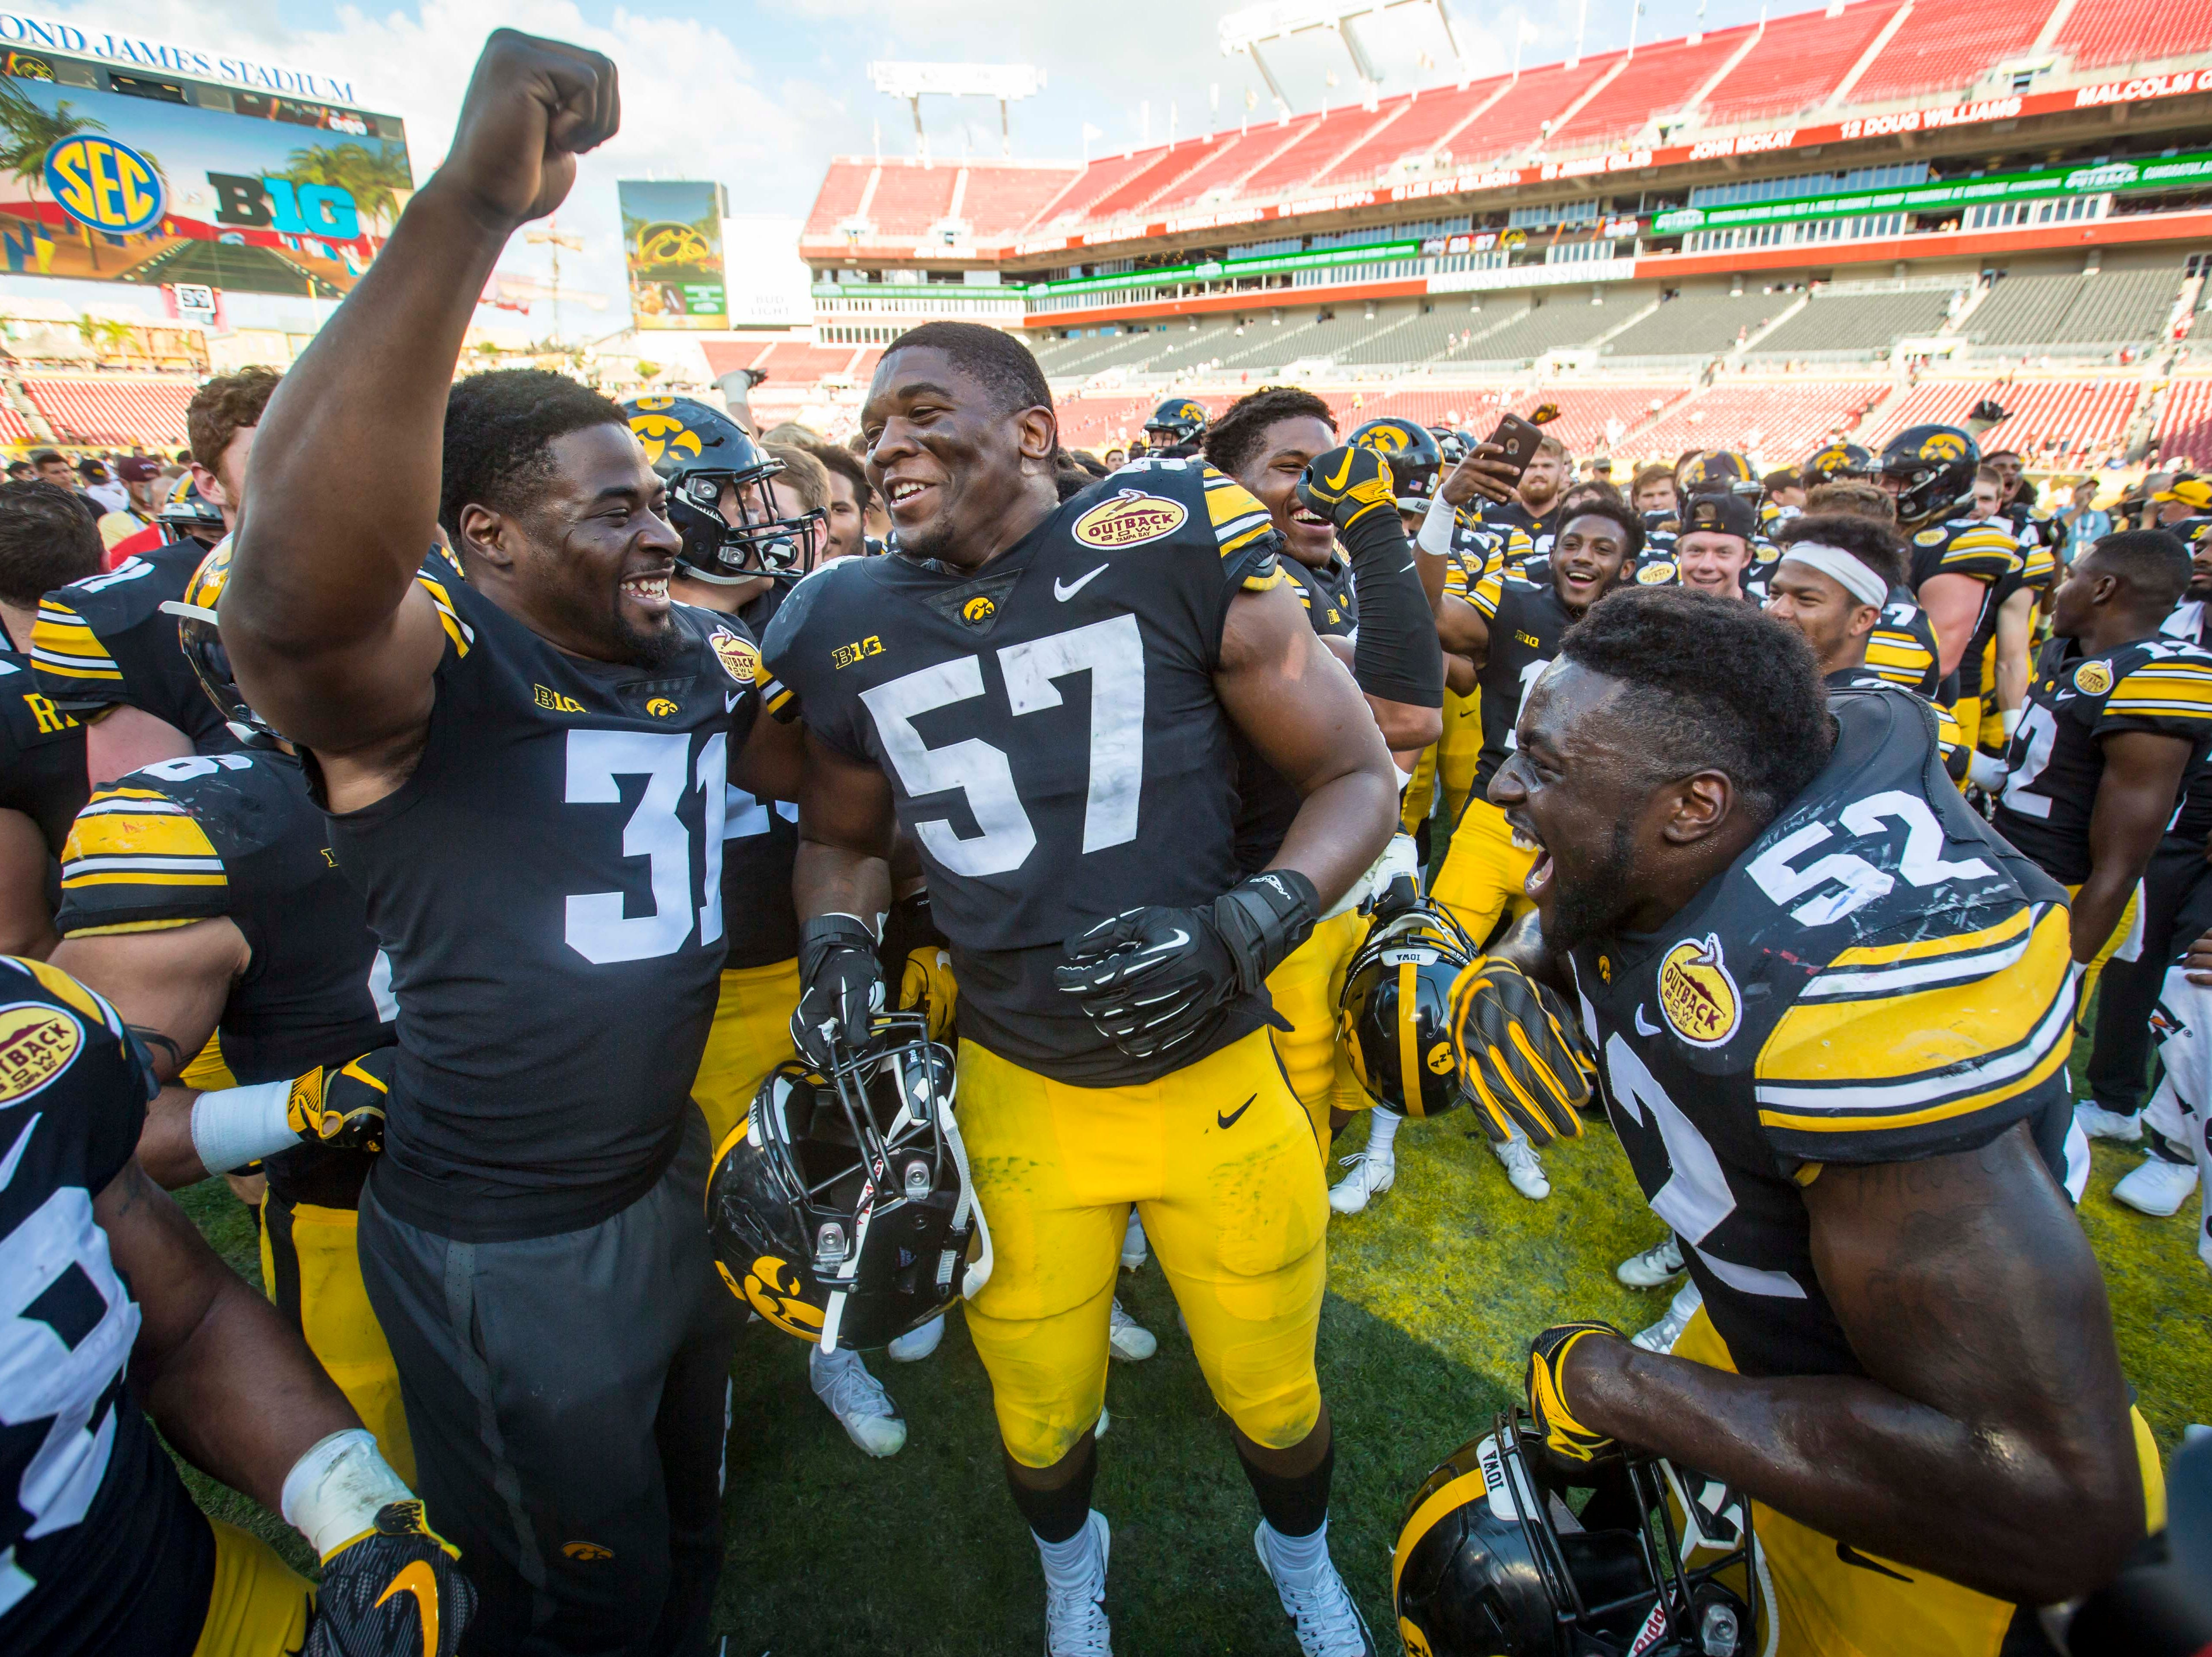 Iowa football players celebrate their victory over Mississippi State at the Outback Bowl Tues., Jan. 1, 2019, at Raymond James Stadium in Tampa, Florida. Iowa defeated Mississippi State 27-22.